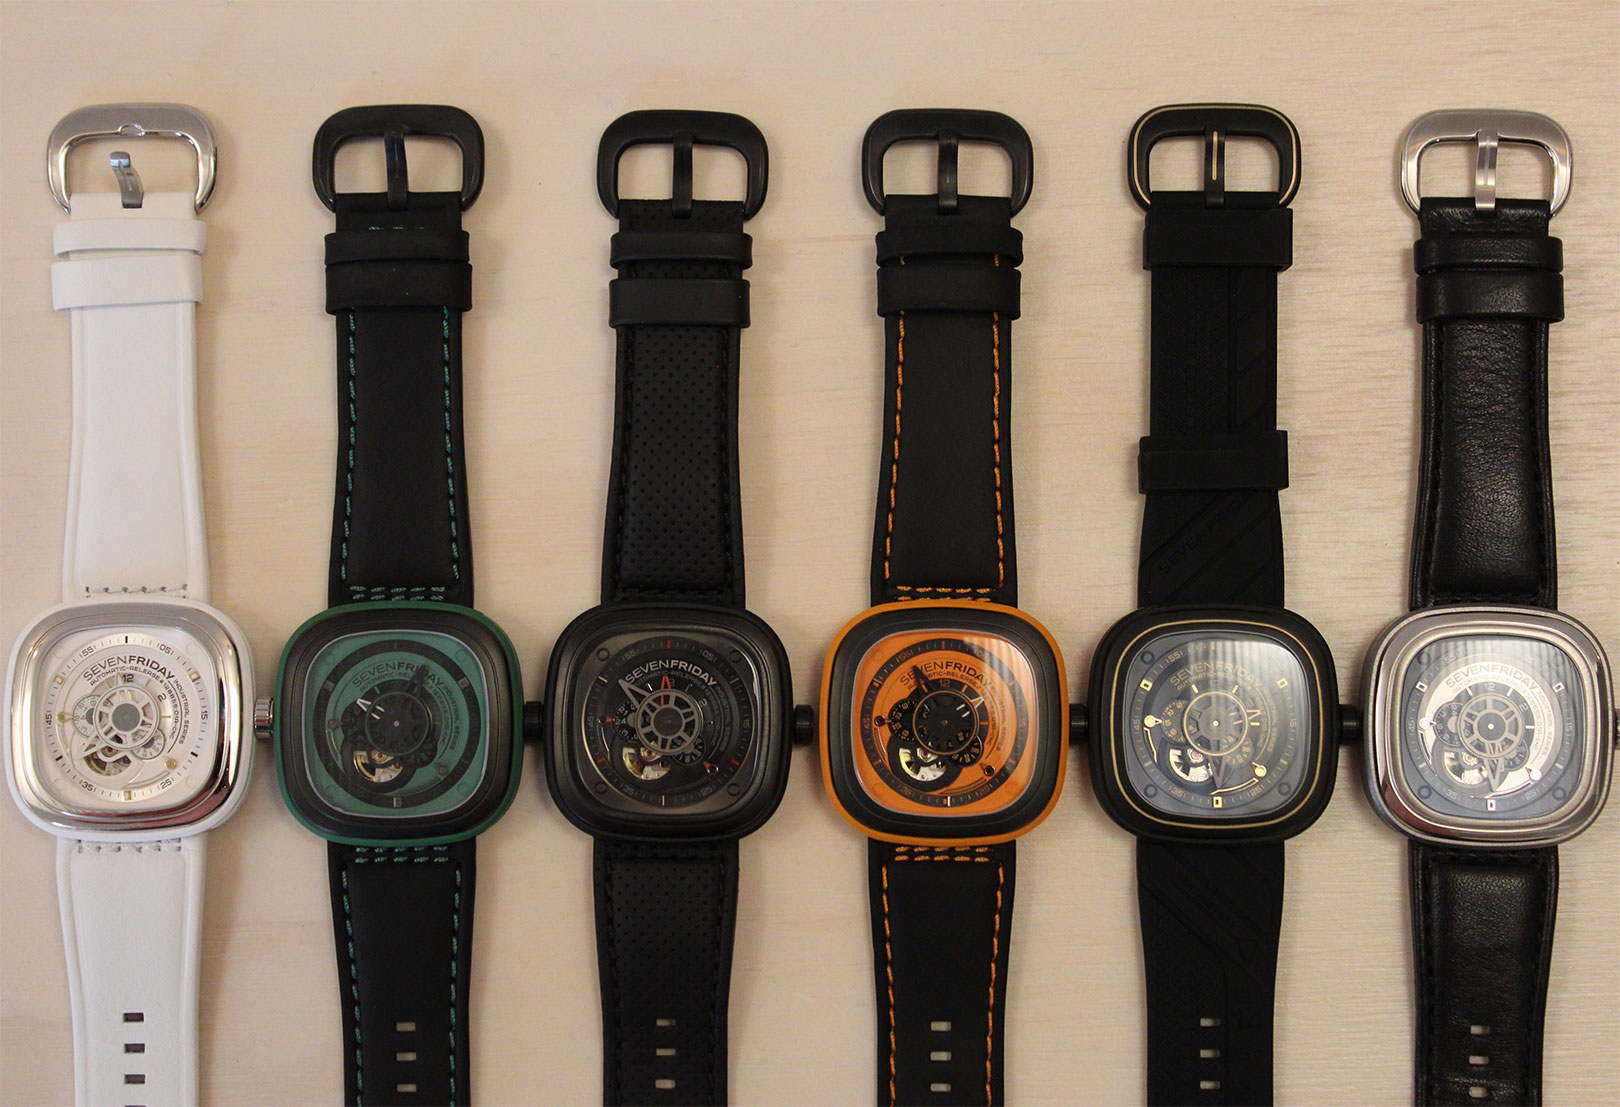 Sevenfriday watch collection